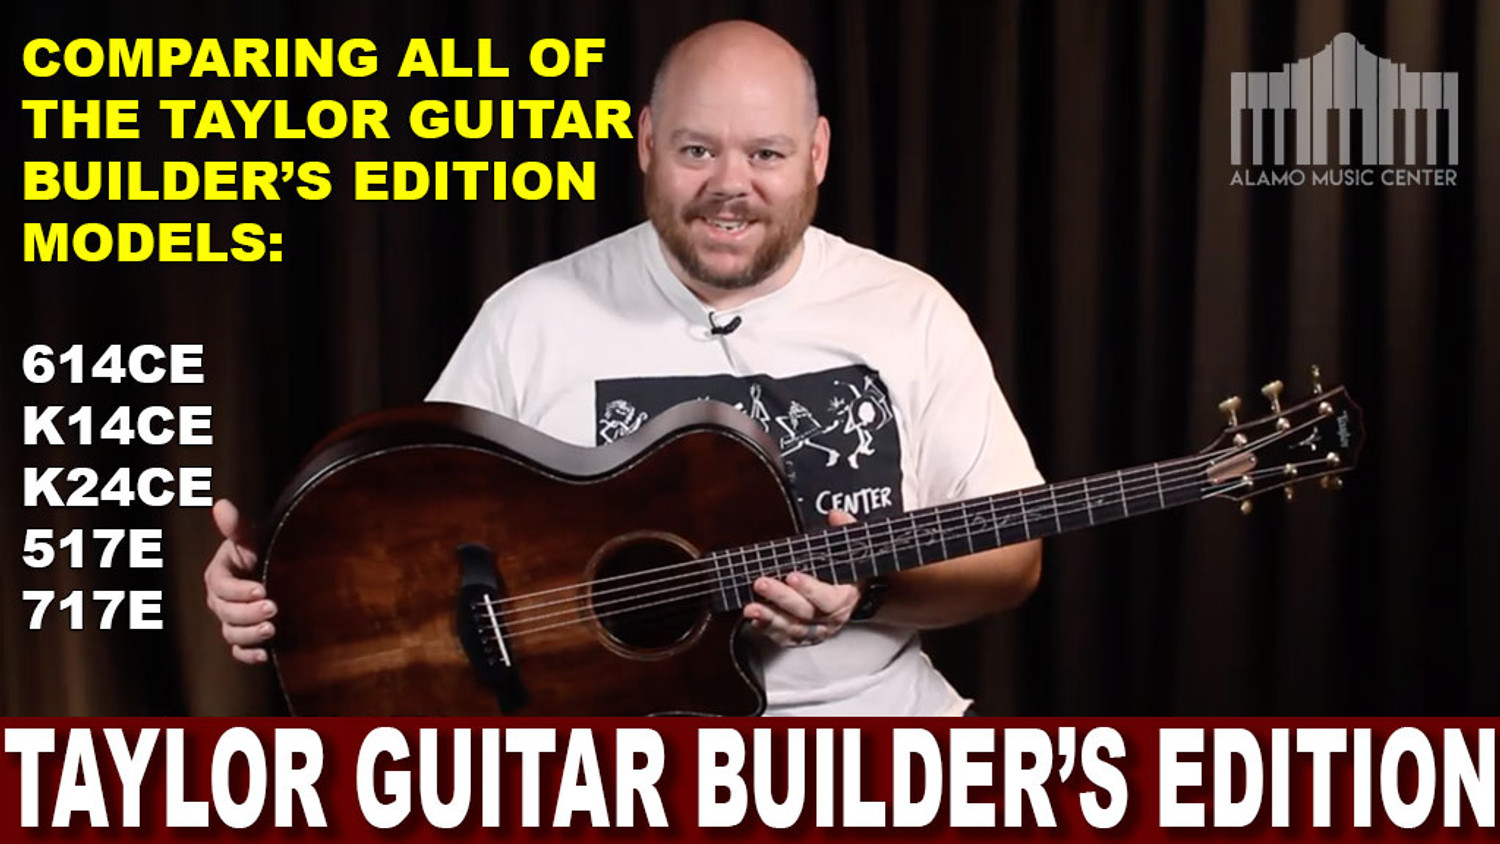 Taylor Guitars Builder's Edition Comparison. Amazing Guitars! Which one is right for you?!